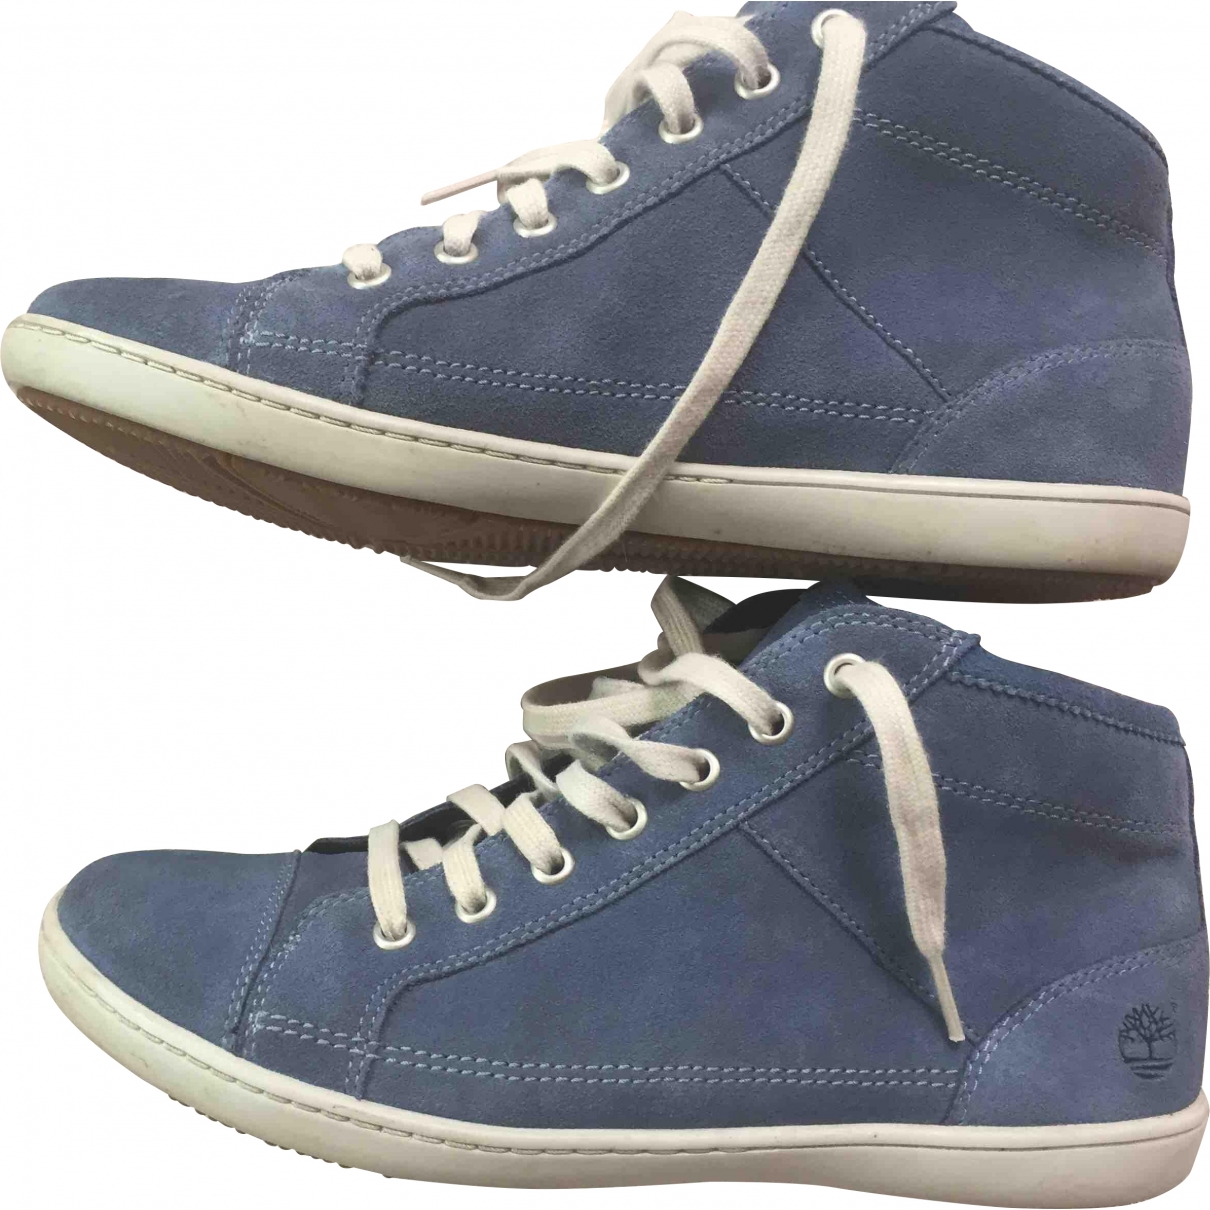 Timberland \N Blue Suede Ankle boots for Women 5.5 UK